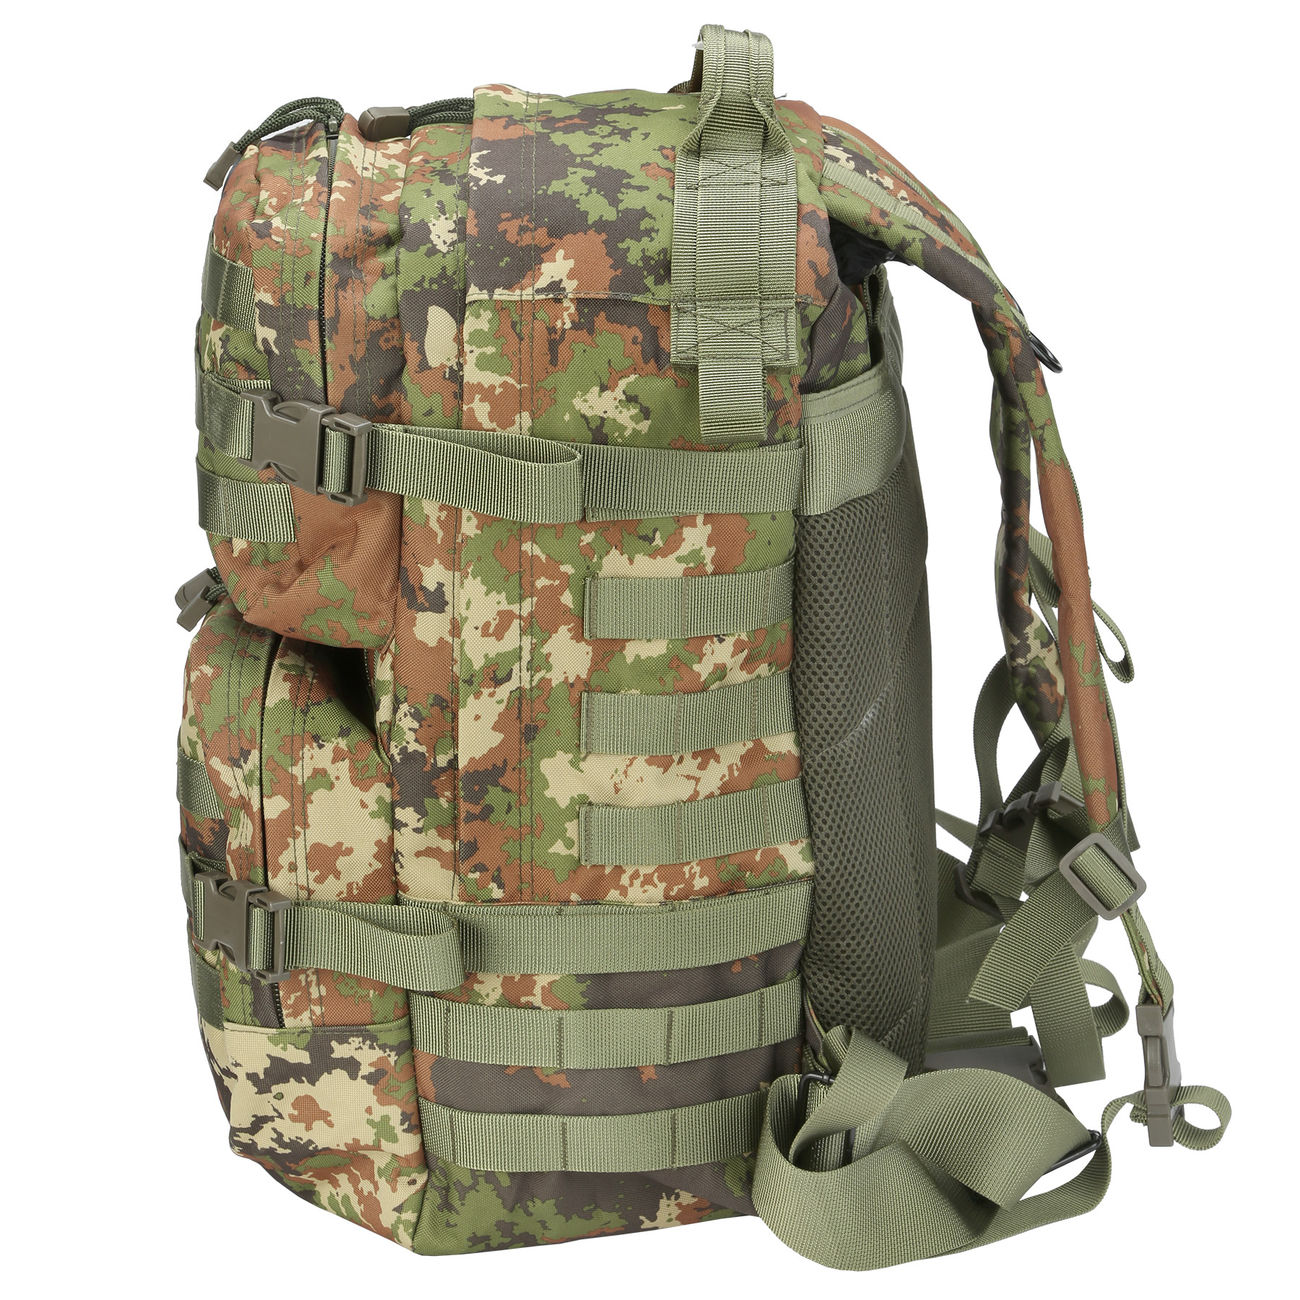 MFH Rucksack US Assault II vegetato 2